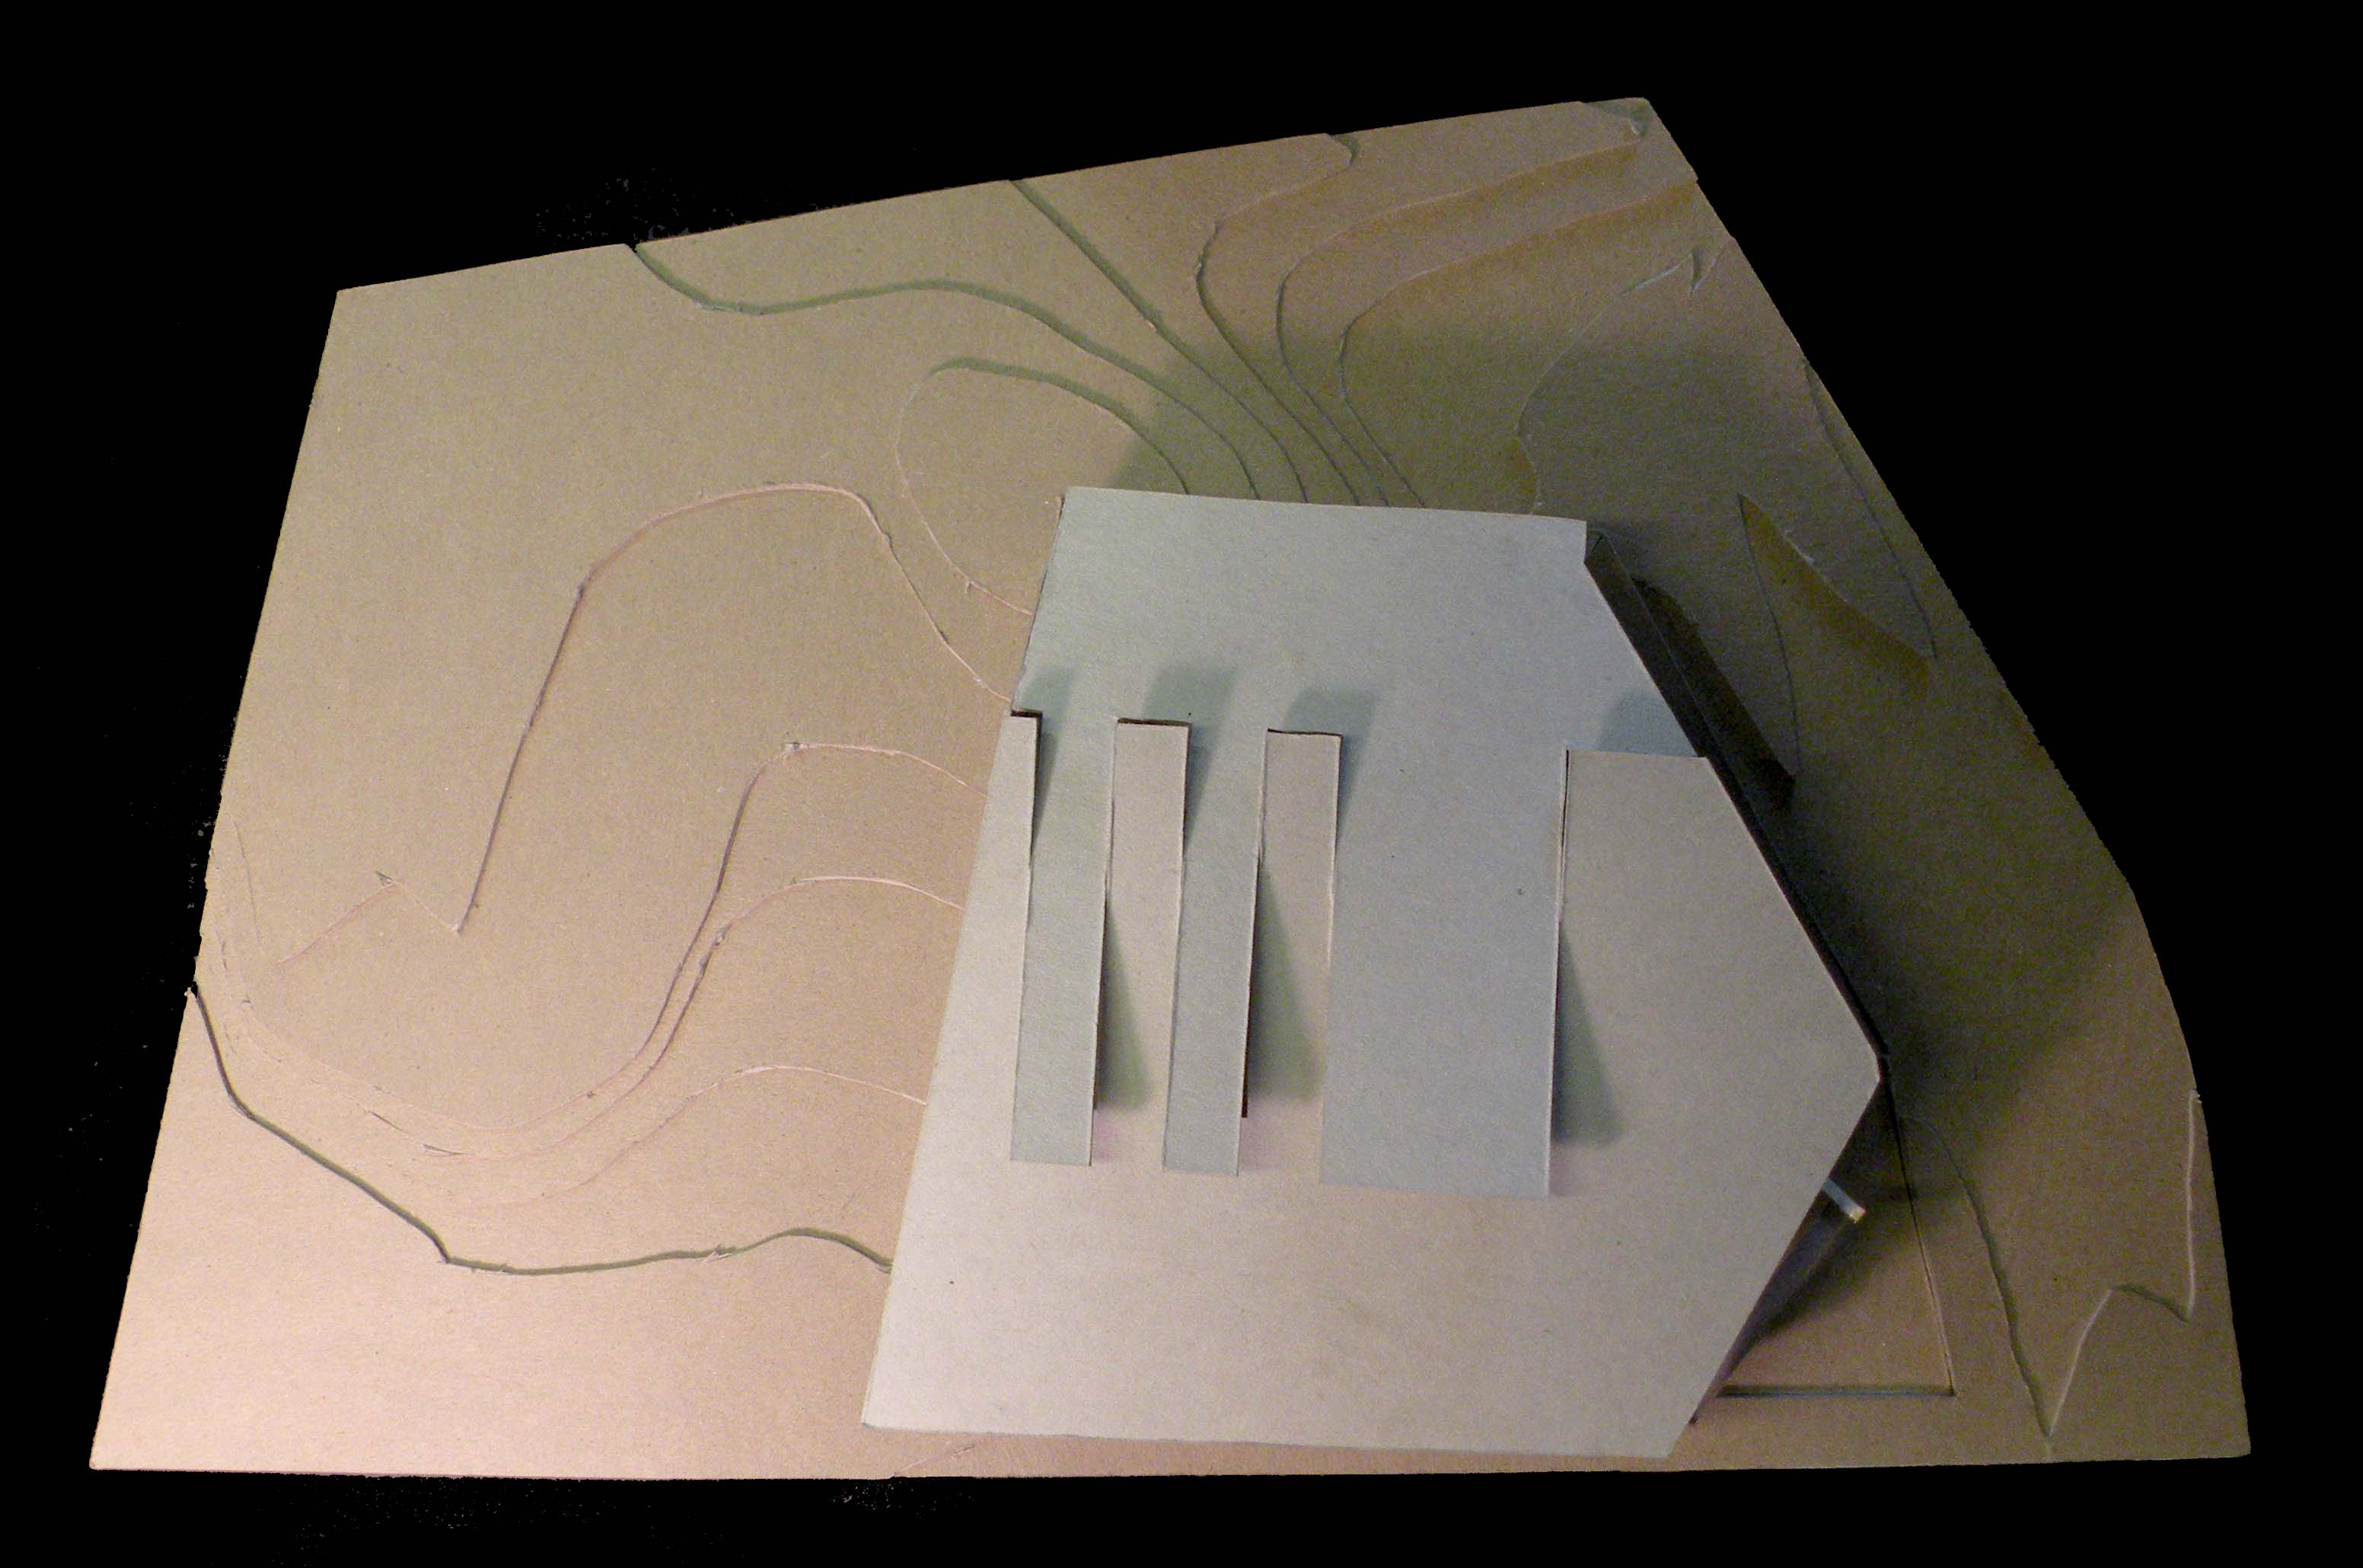 Mass Model- In Topography